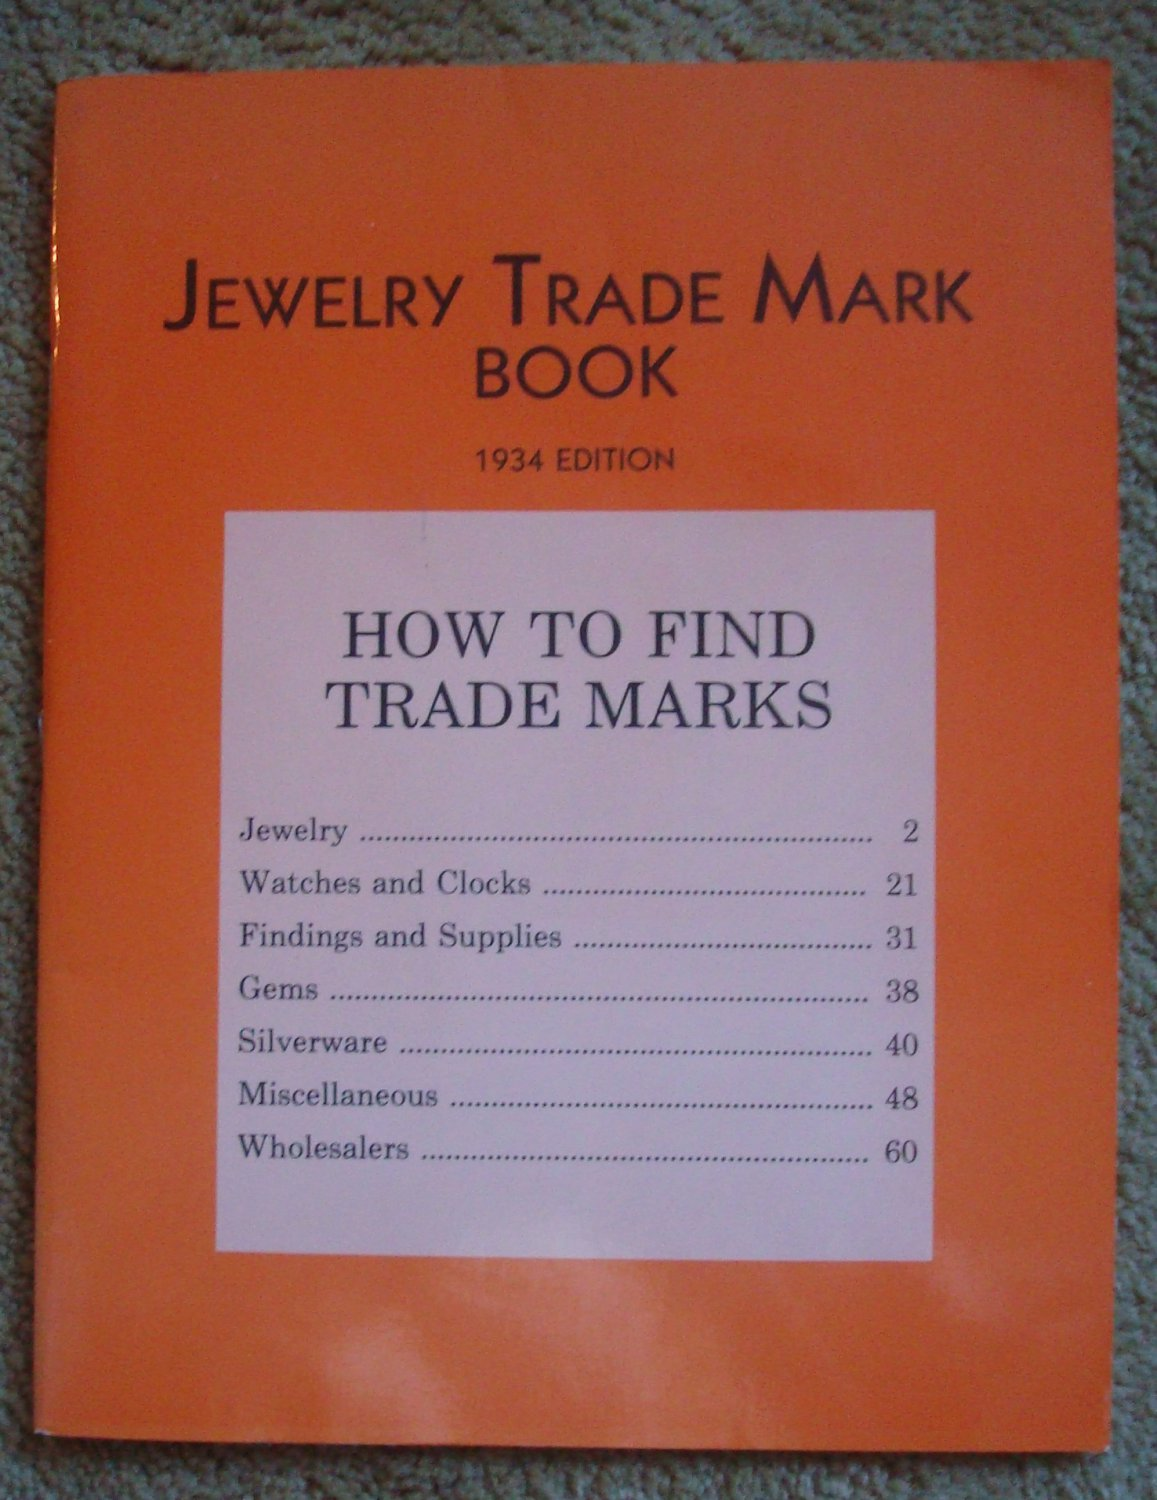 The Keystone Jewelry Trade Mark Book 1934 Edition